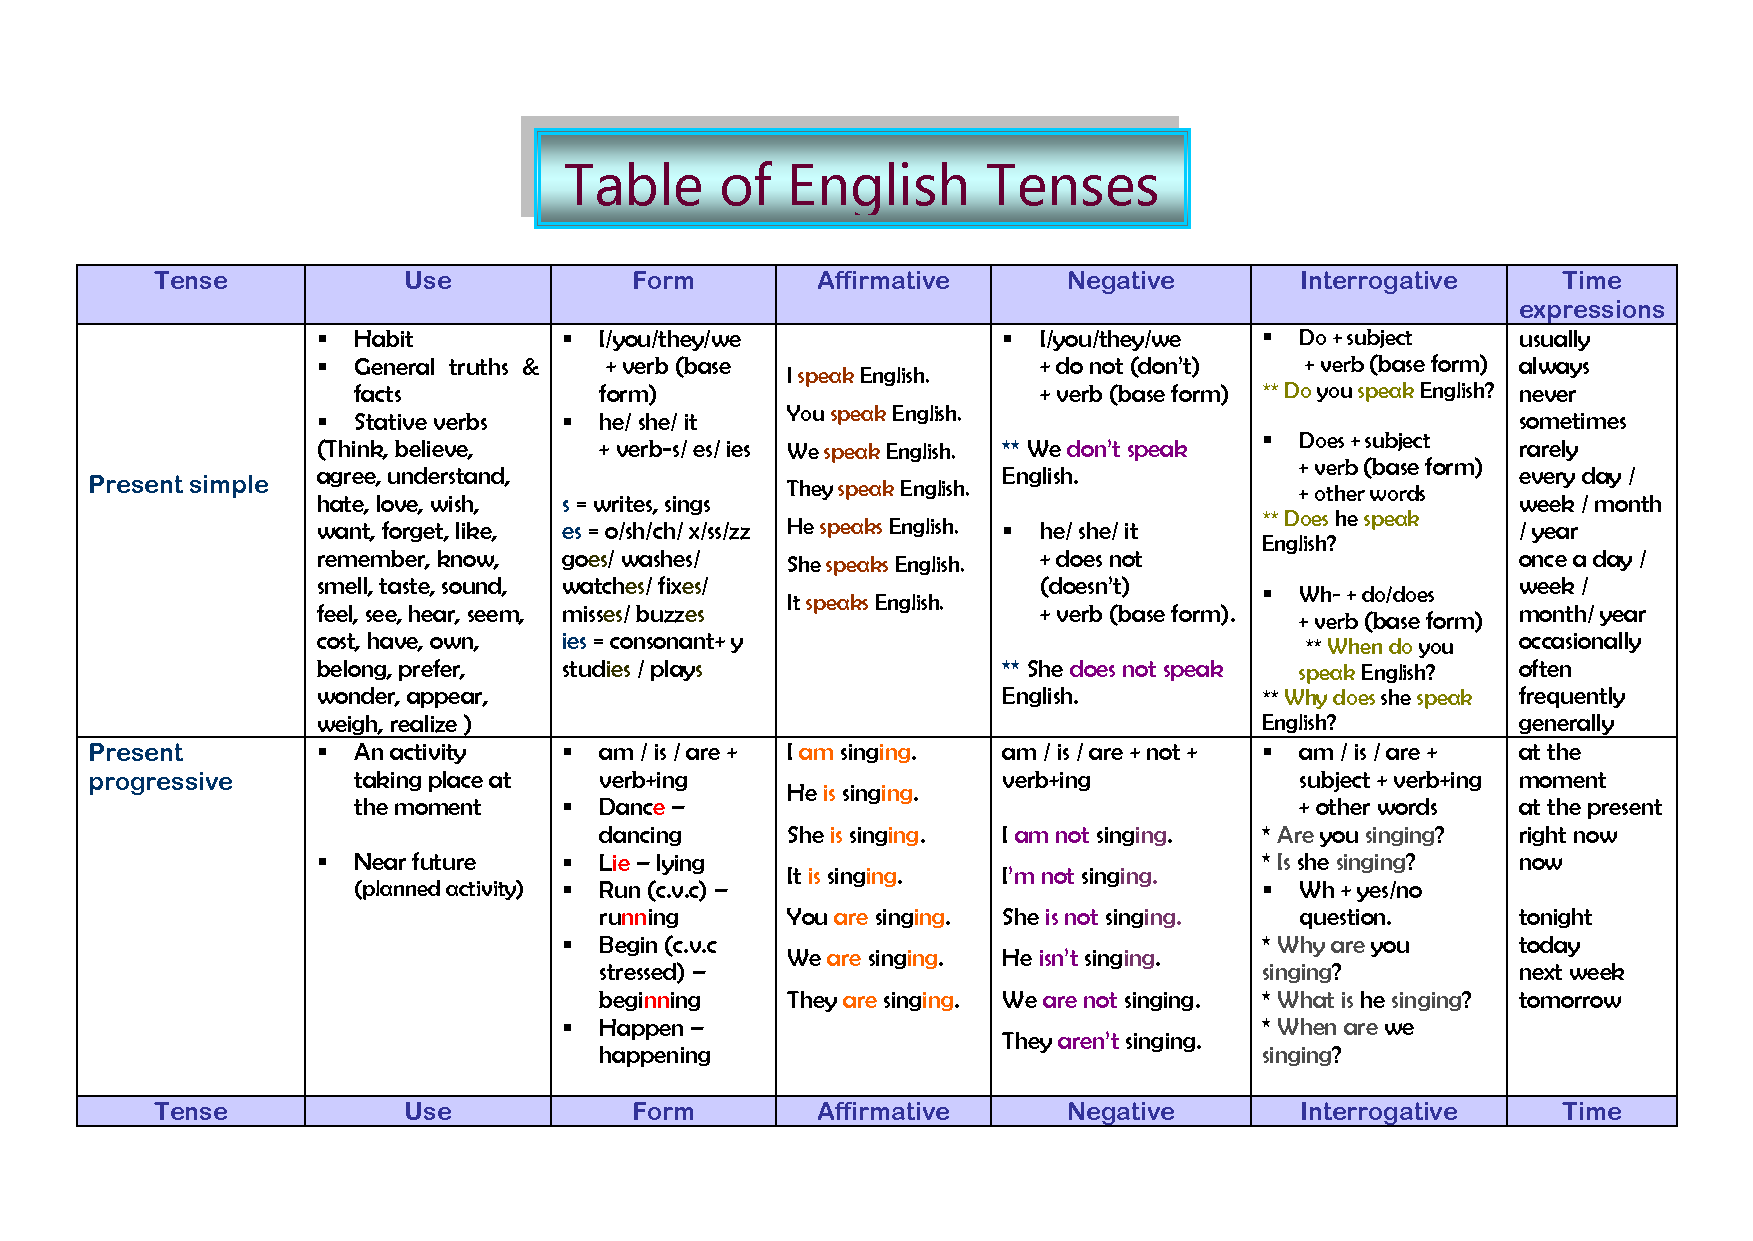 Tense Table Use Form And Time Expressions